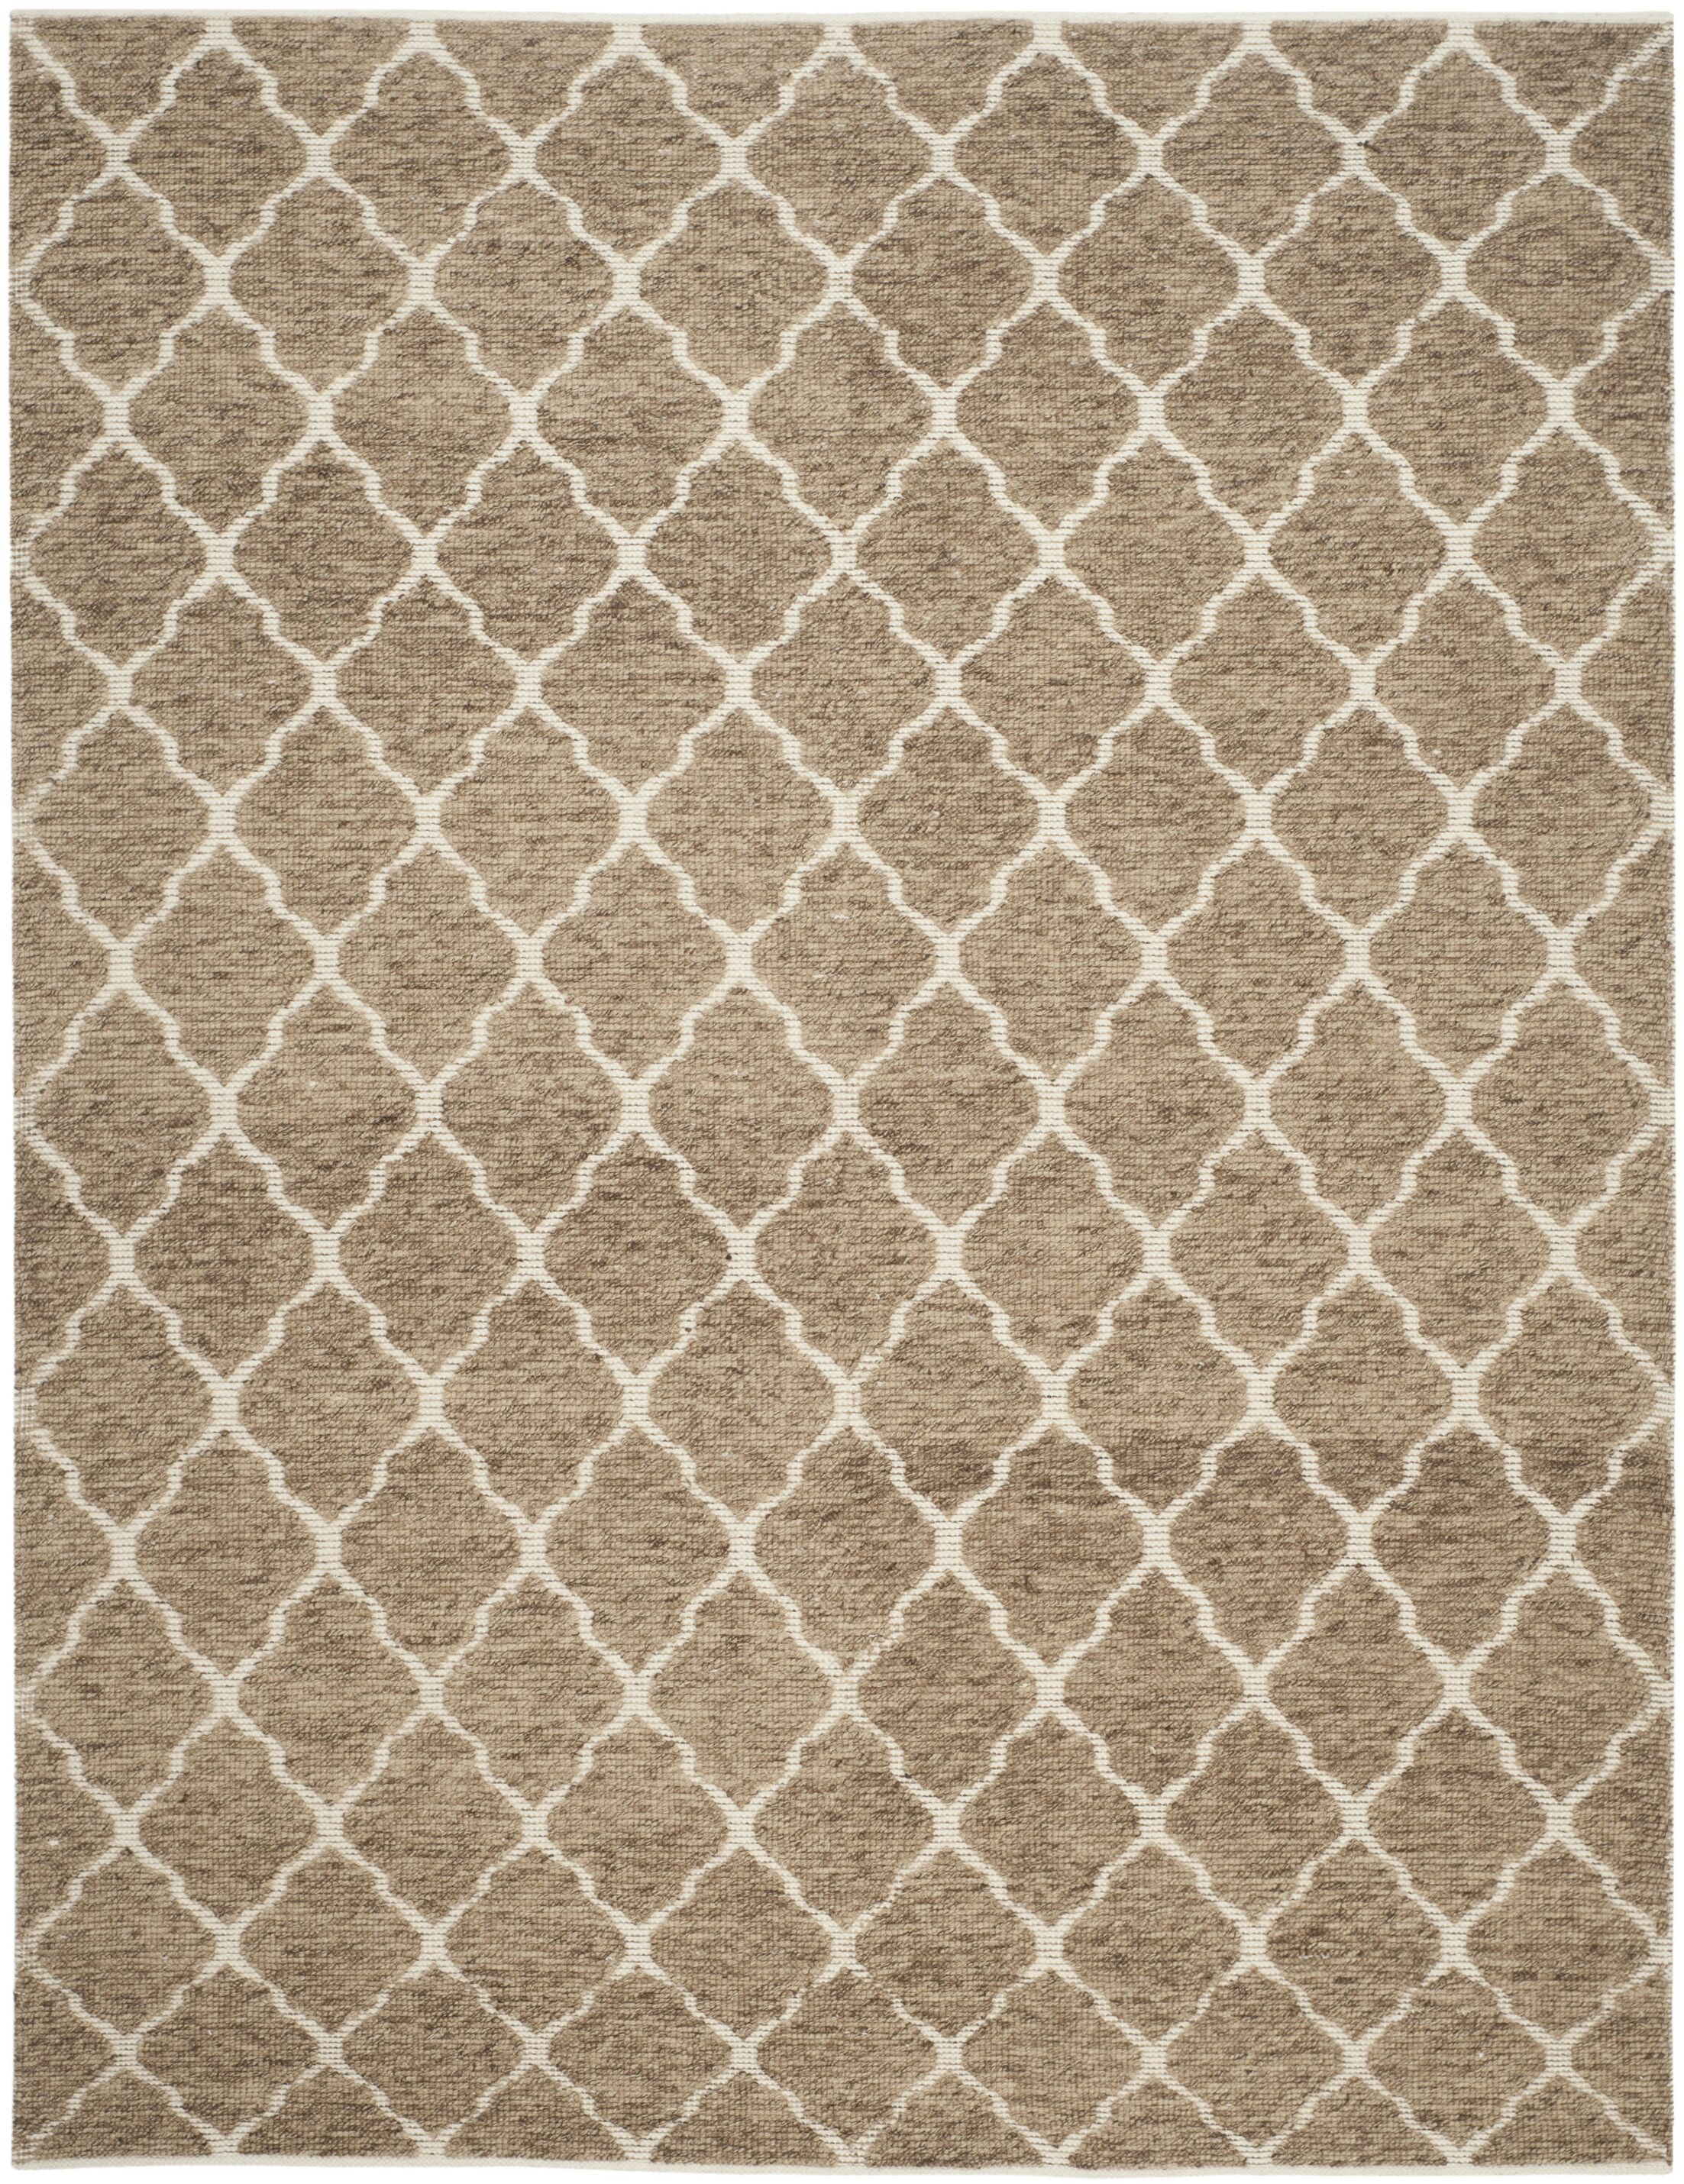 Vermont Hand-Woven Beige/Ivory Area Rug Rug Size: Rectangle 6' x 9'